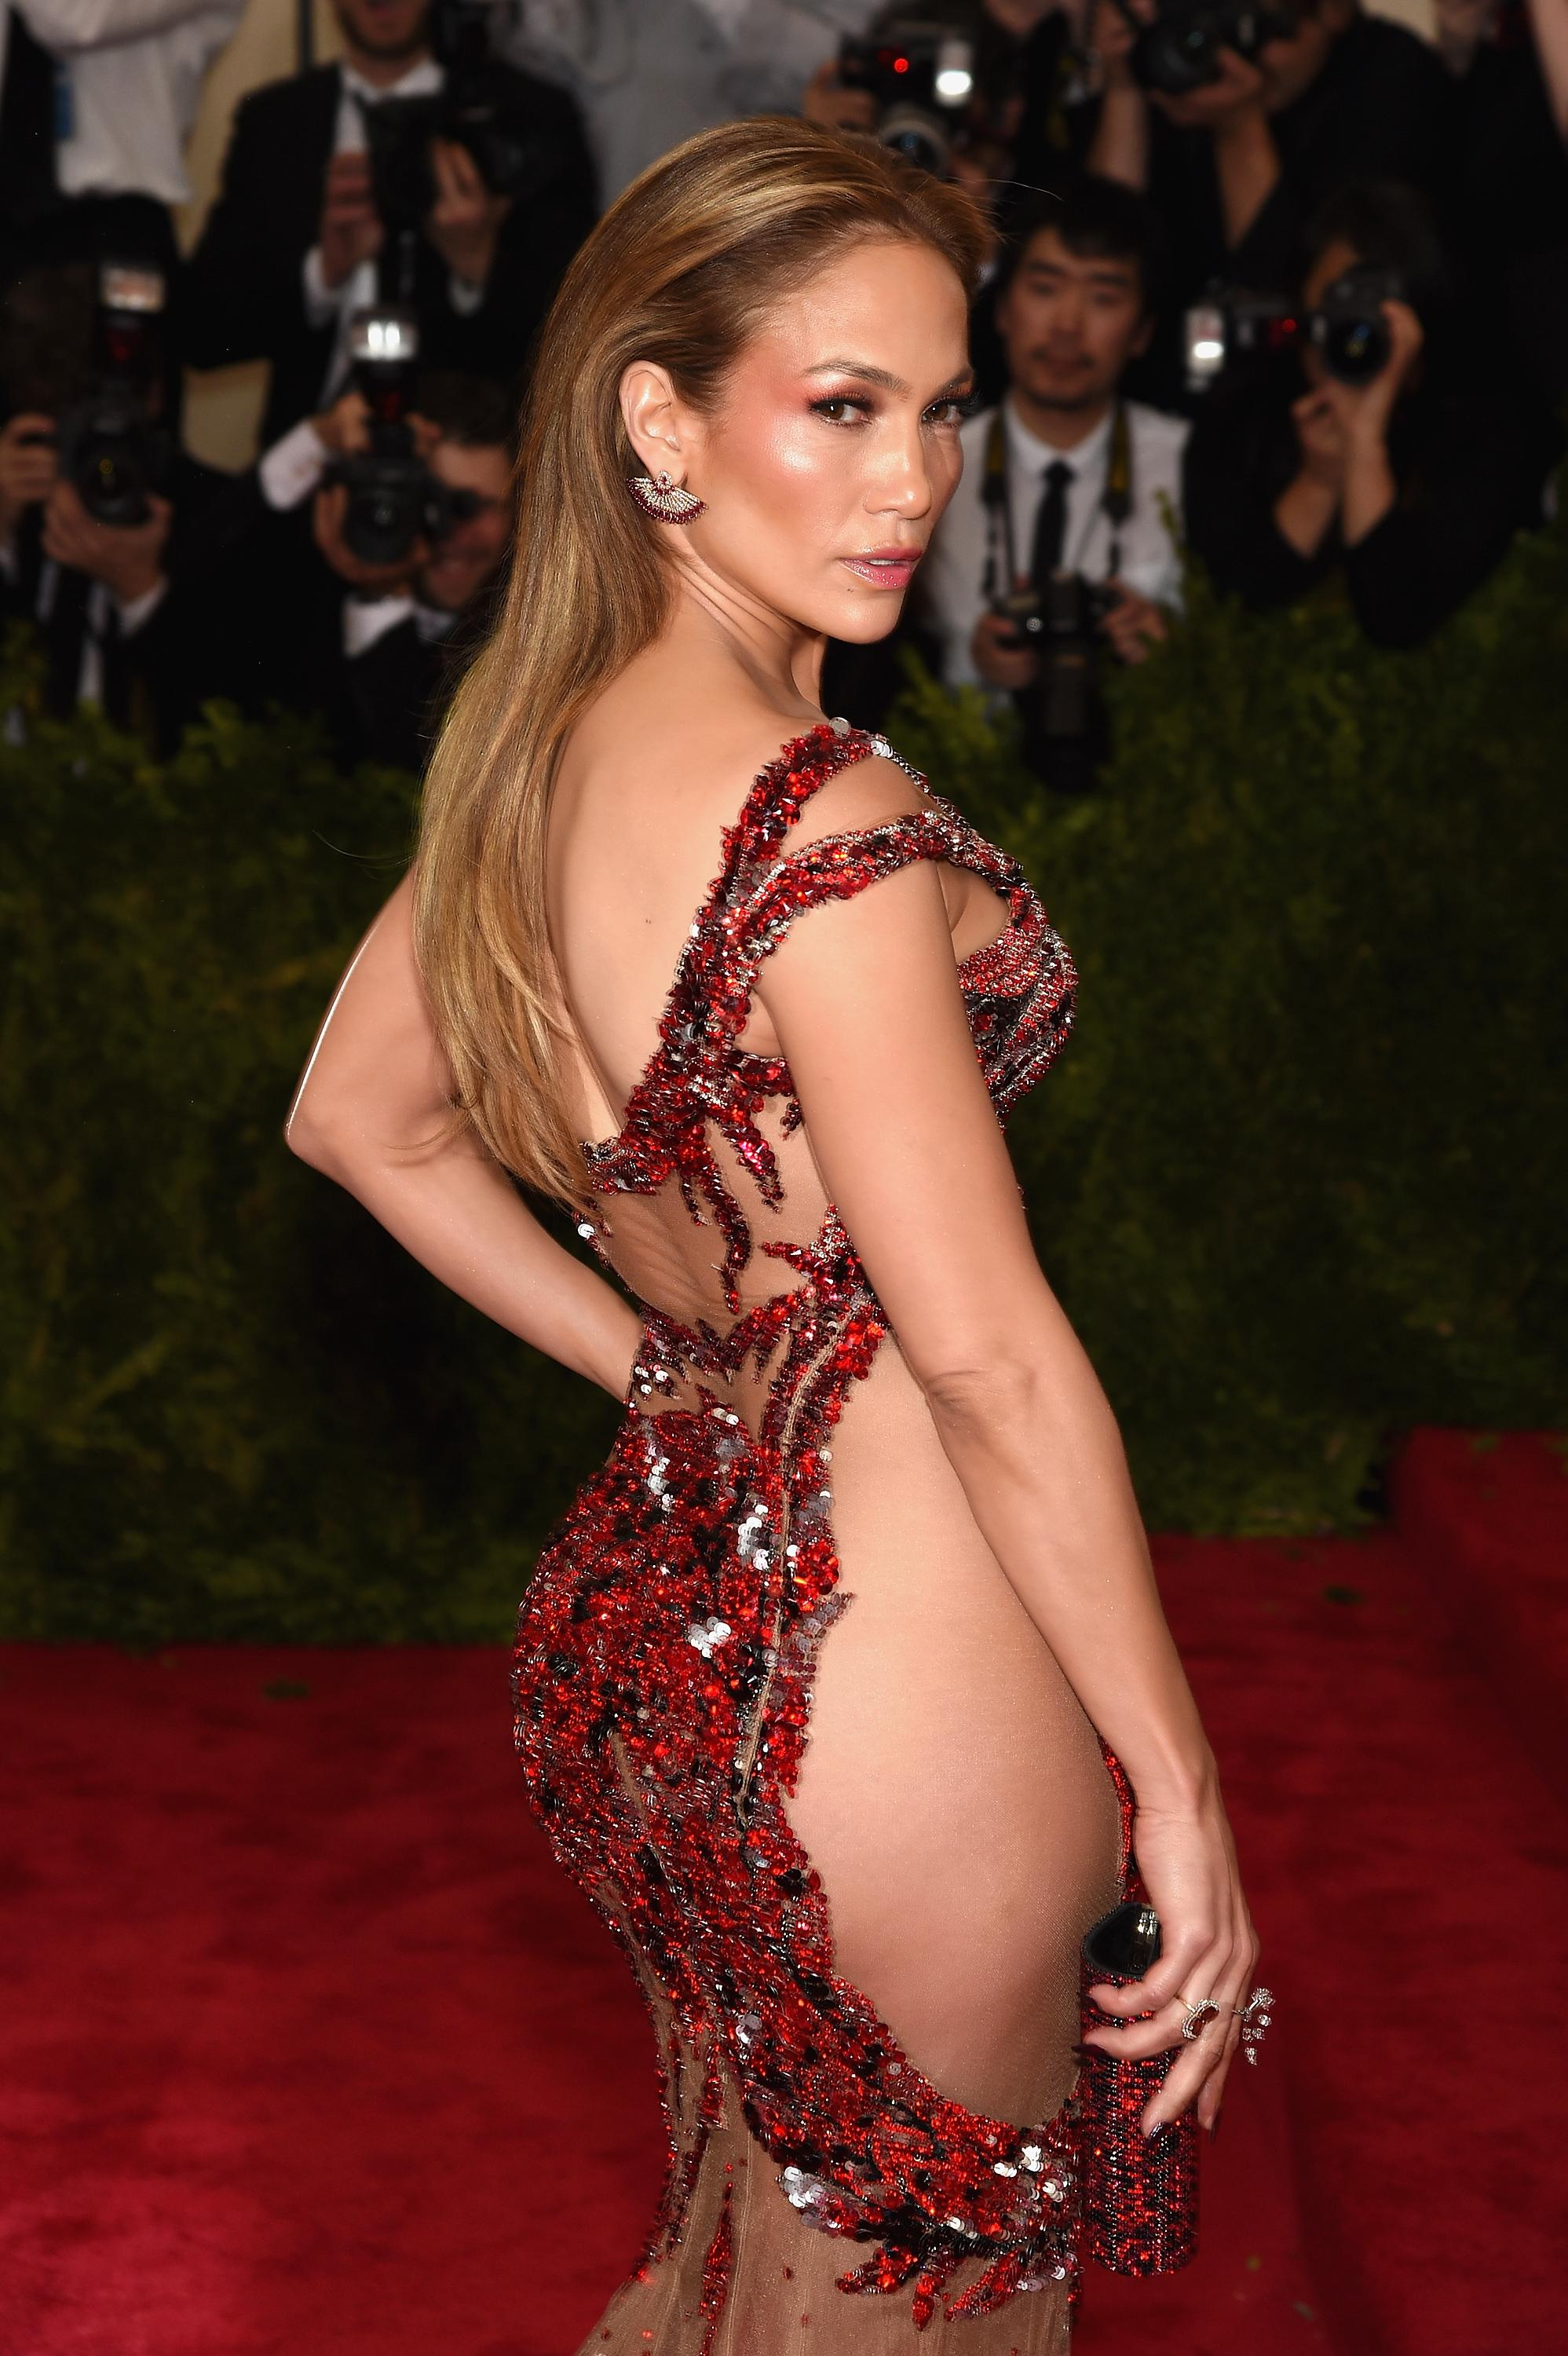 Met Gala Dresses - the best collection of celebrity red carpet dresses inspired by the celebrities at the Met Gala. This collection covers the ever best celebrity fashion gowns ever seen at the Met Gala in , & These affordable celebrity inspired Met Gala formal dresses are great choice for your prom or any other formal events.